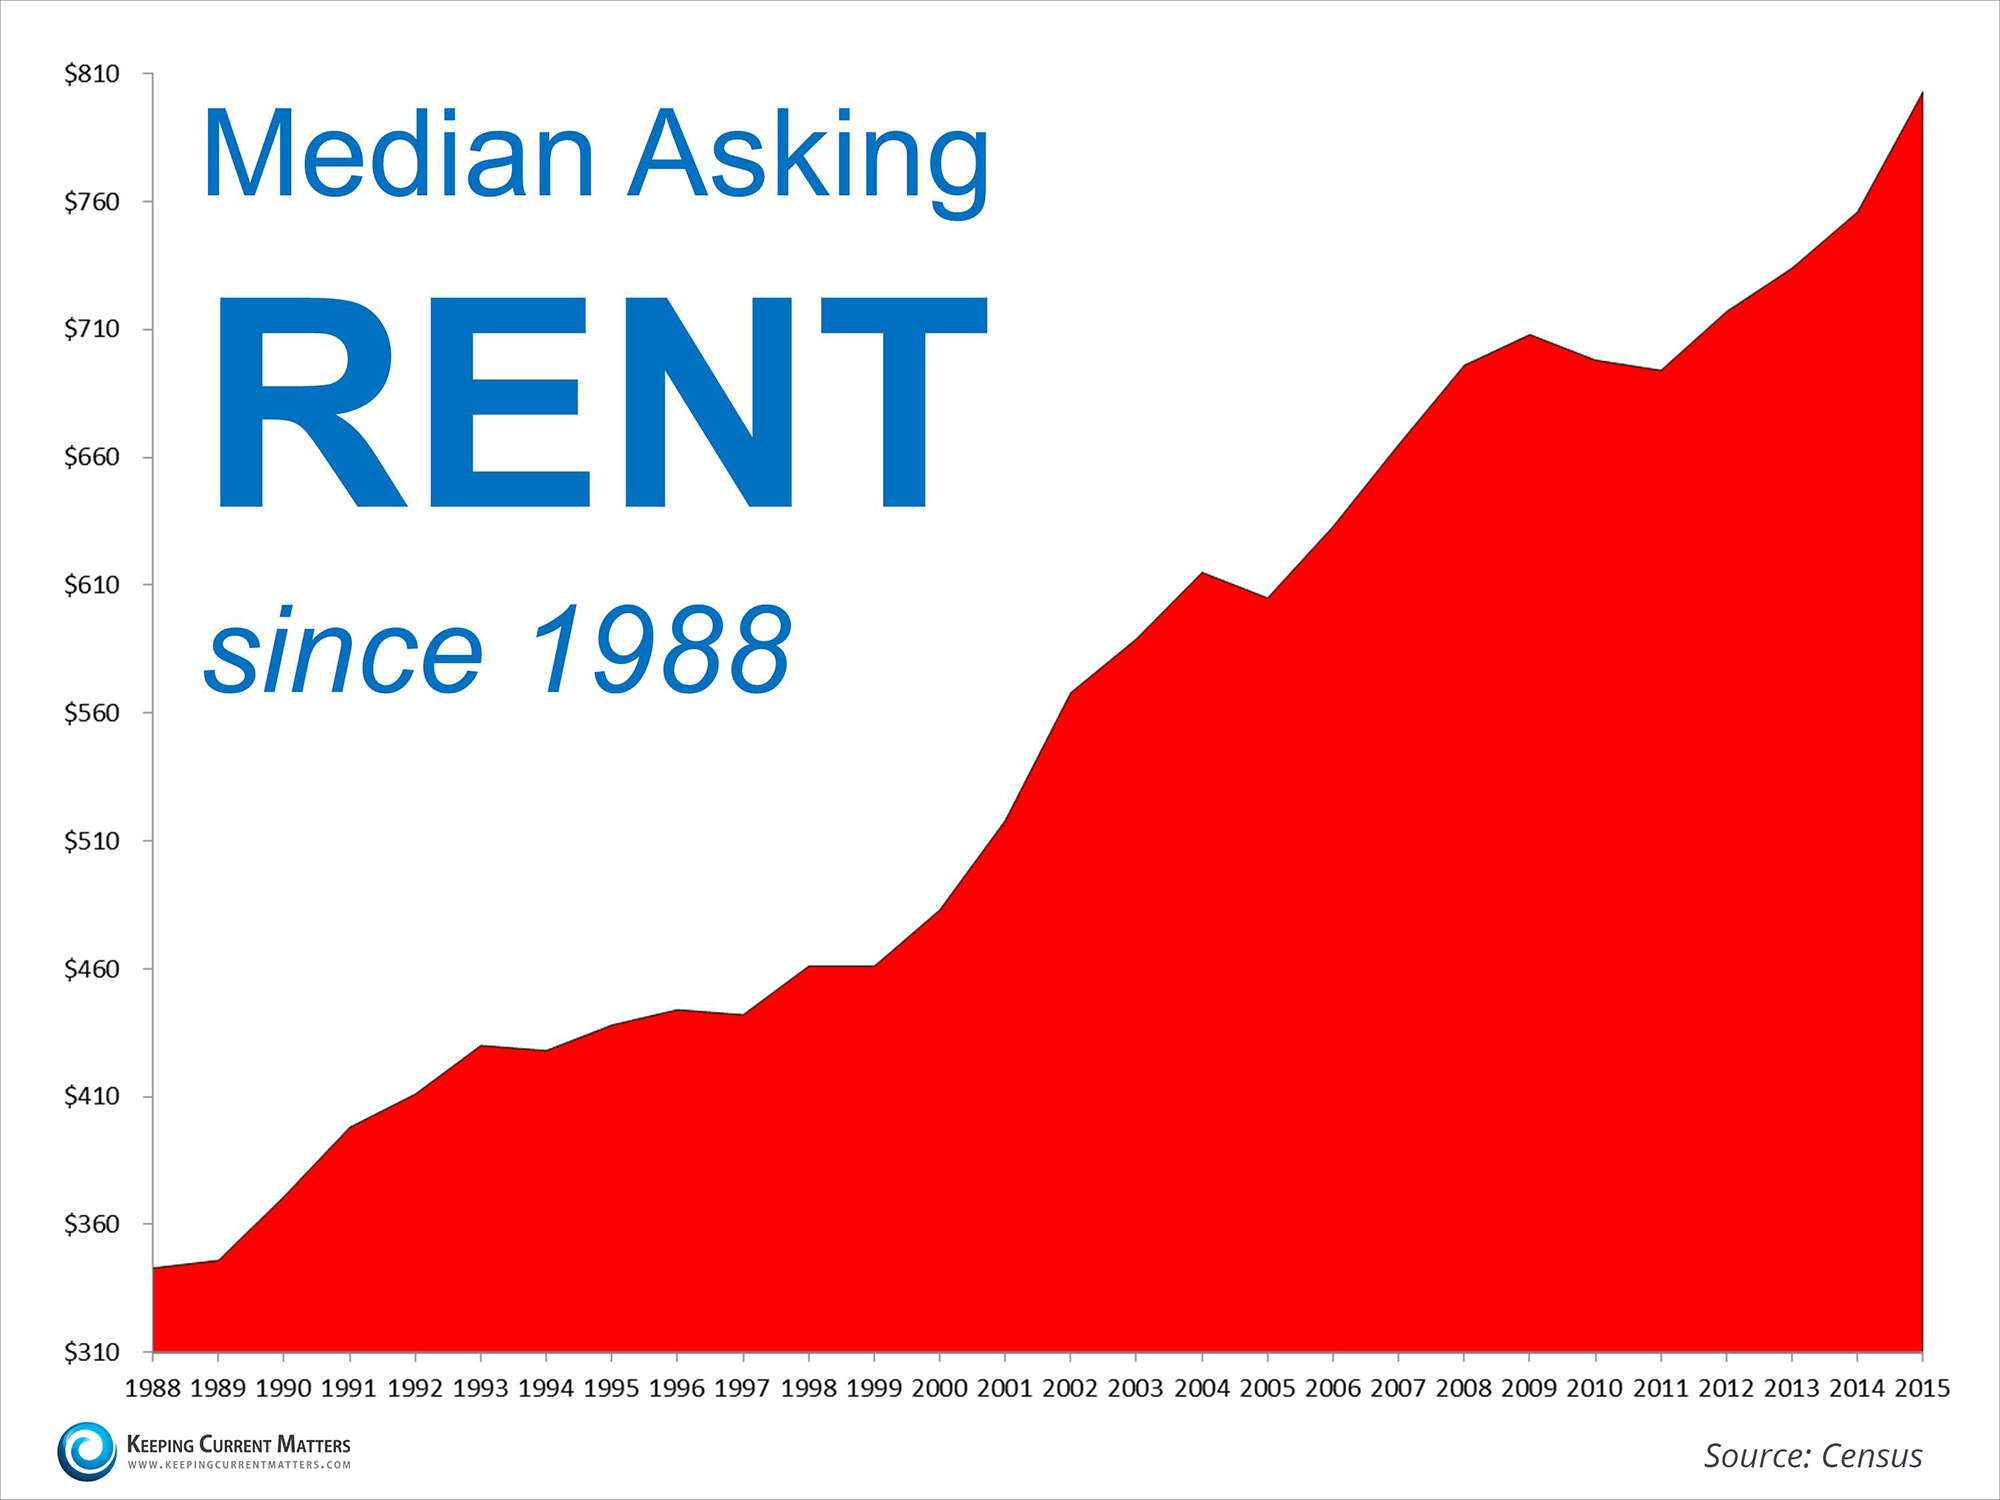 http://www.keepingcurrentmatters.com/wp-content/uploads/2015/08/Increase-in-rents.jpg